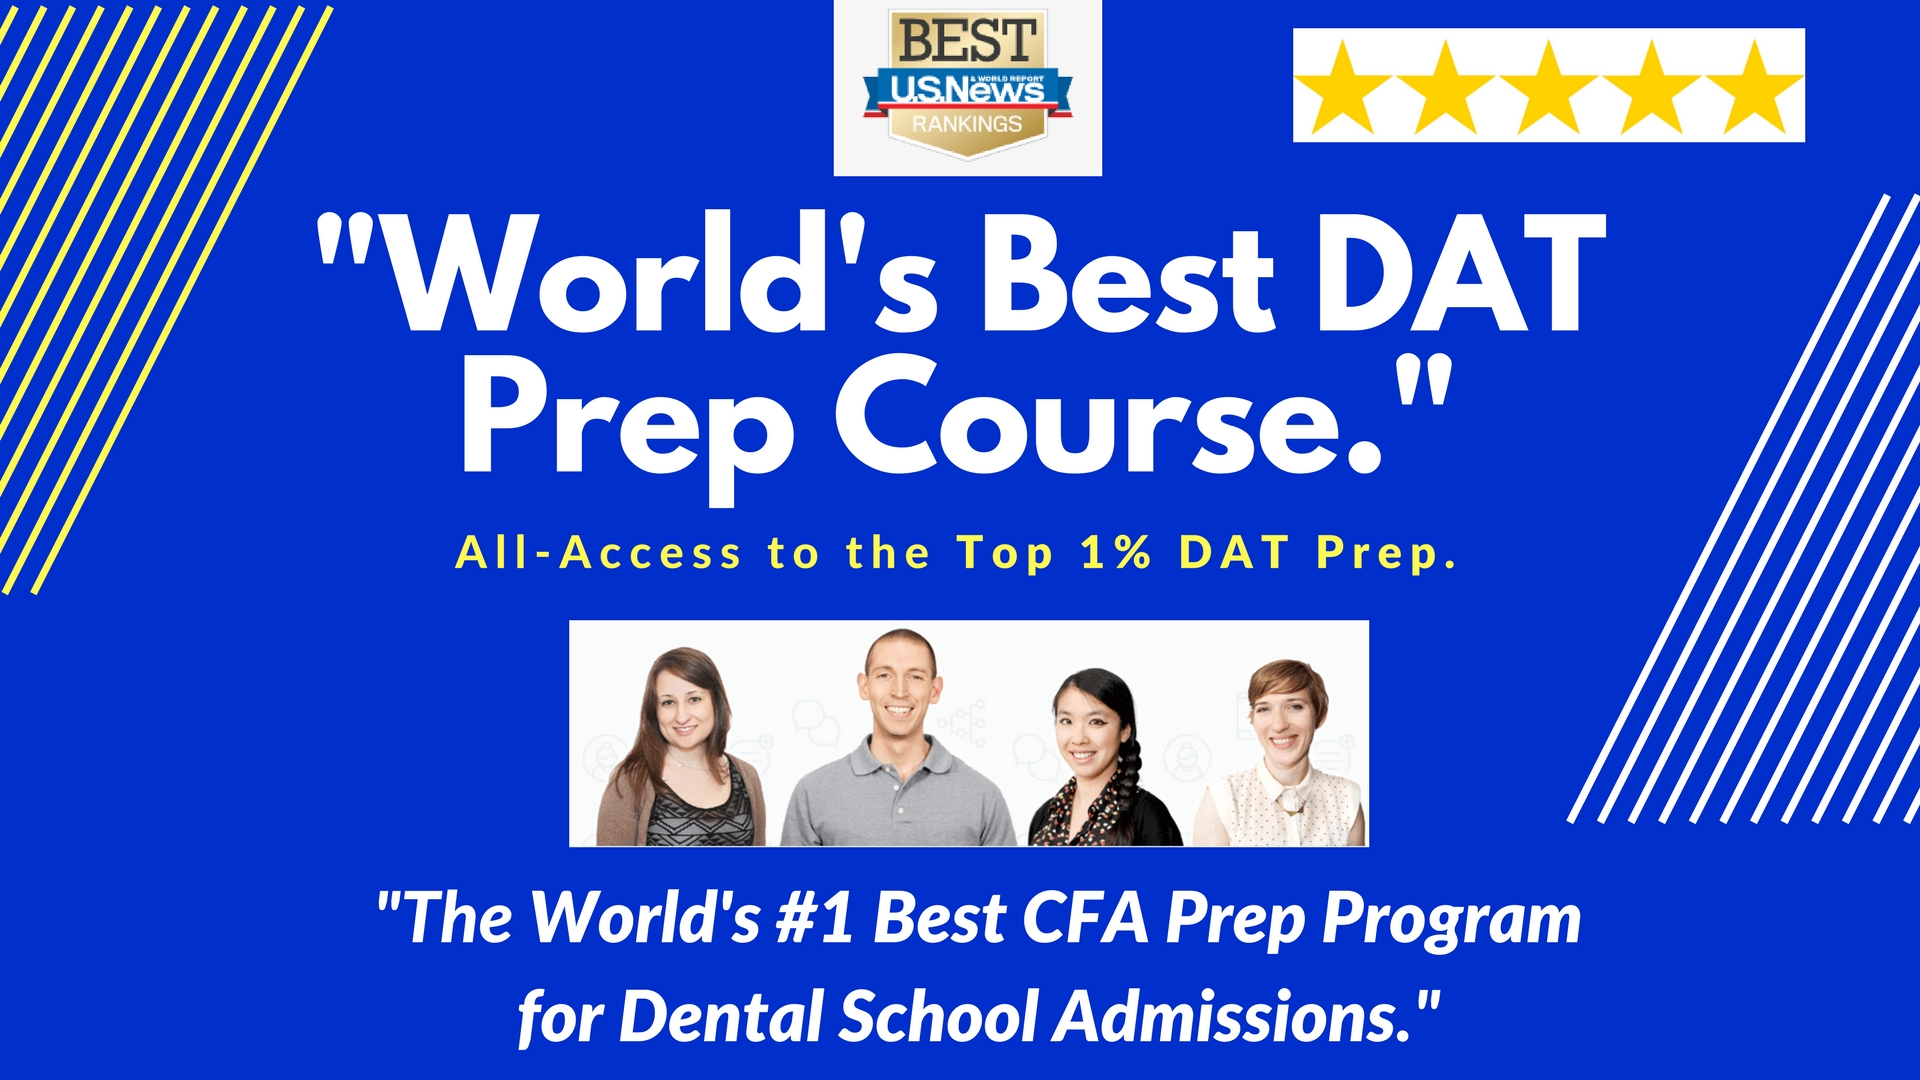 The Best DAT Prep Course - Review.